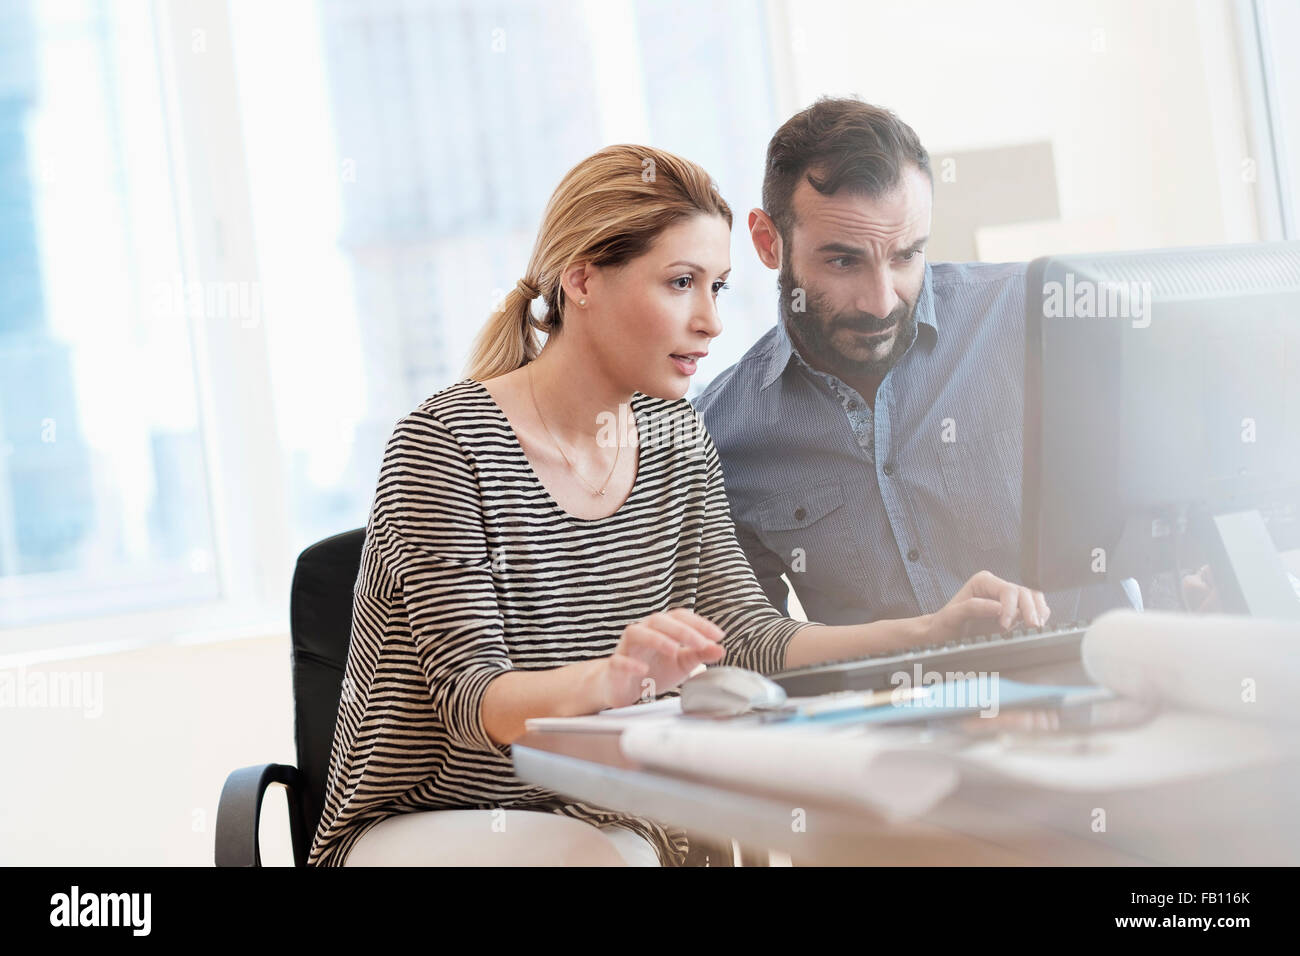 Man and Woman looking at computer in office Photo Stock